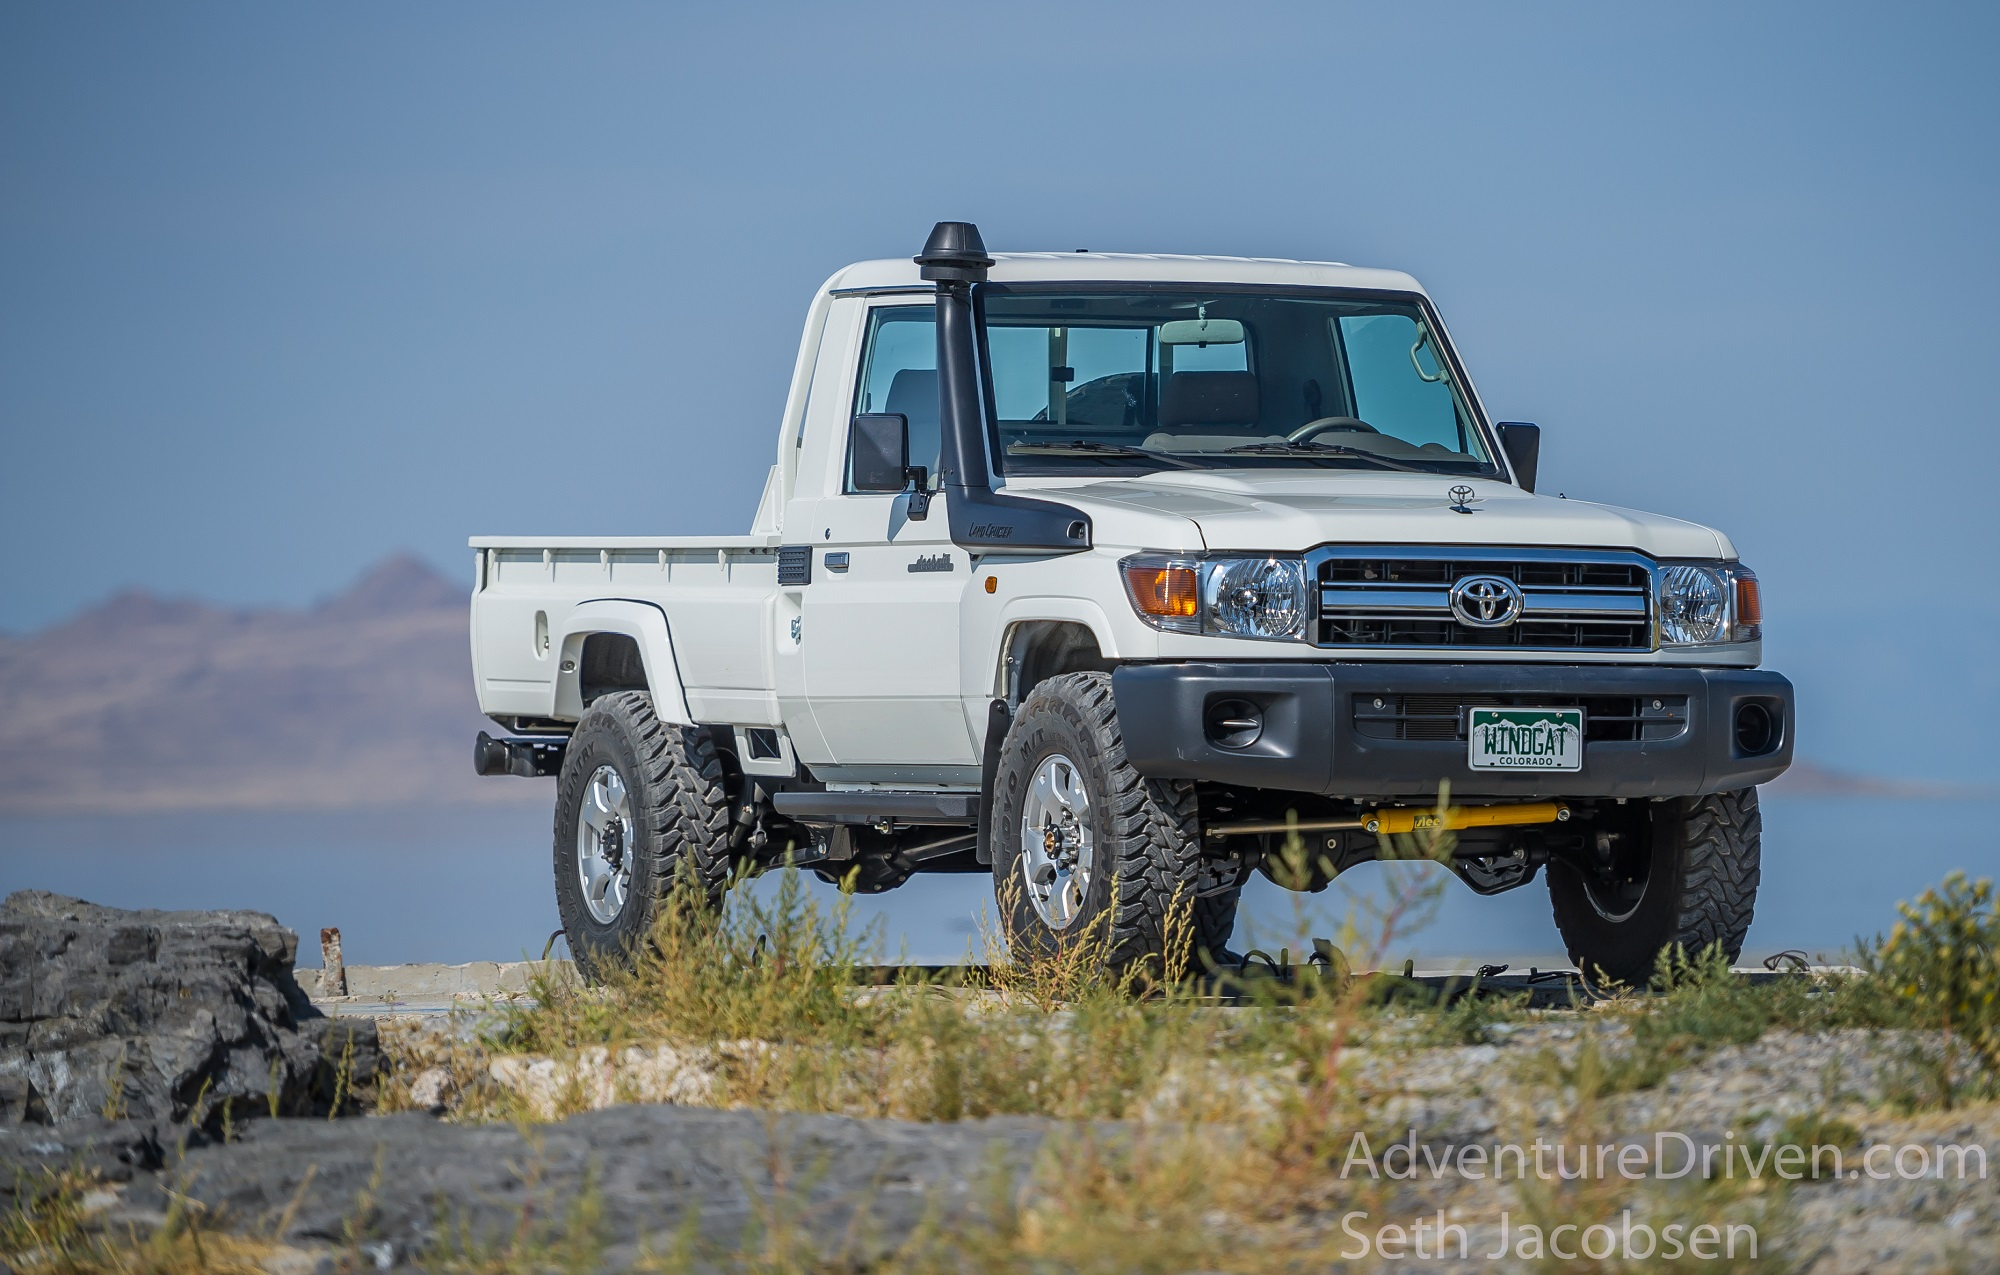 2015 Uzj89 Bakkie Built By Slee Off Road Expedition